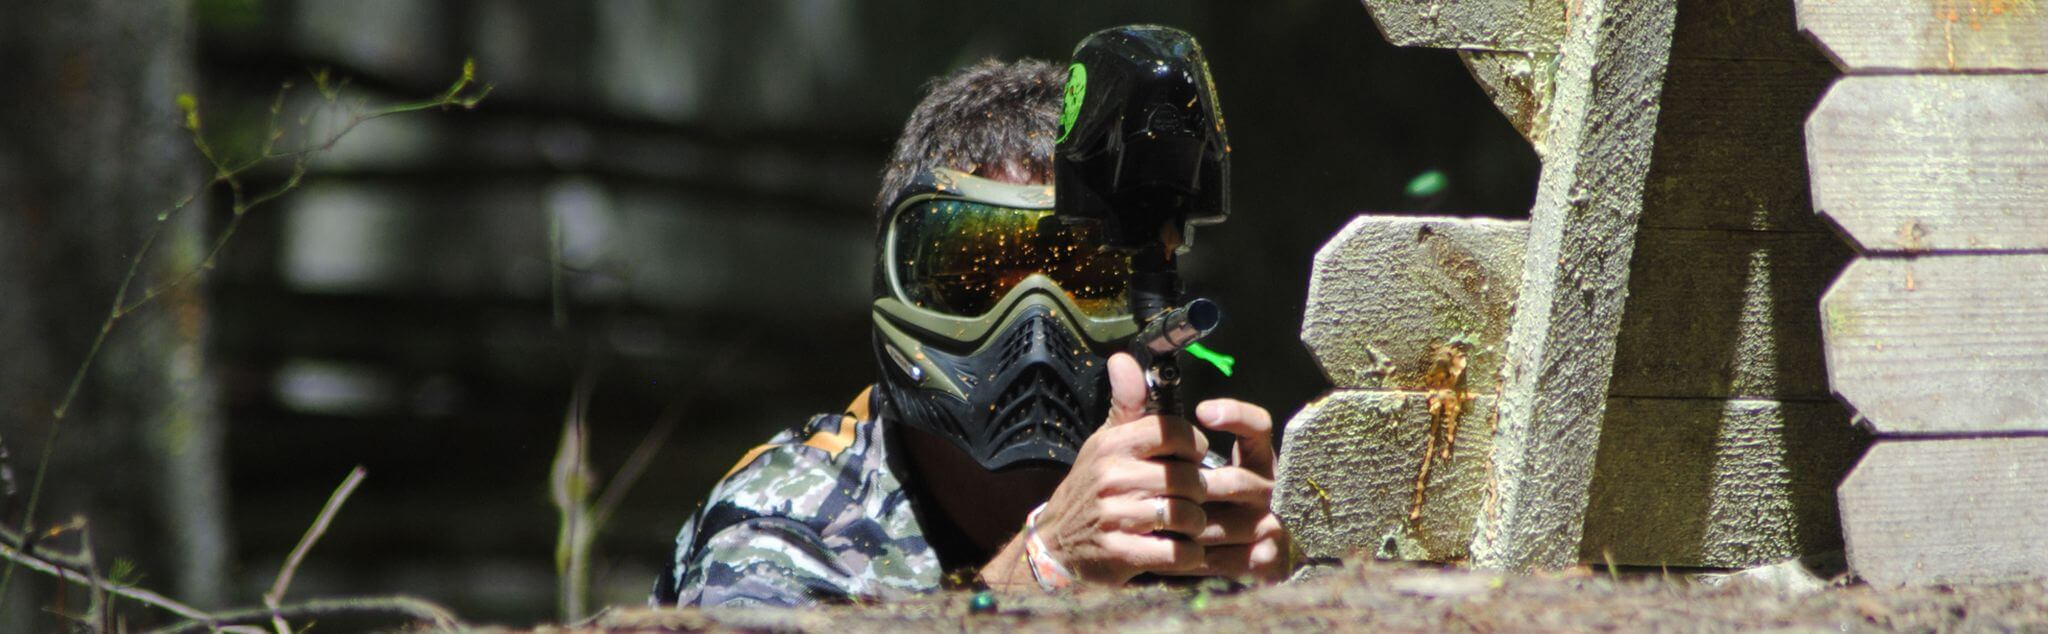 Paintball en Collado Mediano